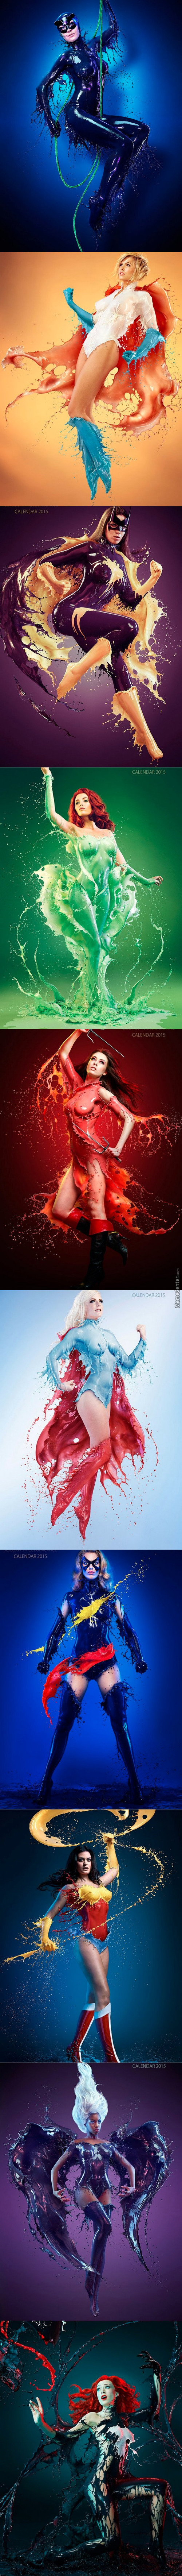 Amazing Superhero Body Art! (Long Post)